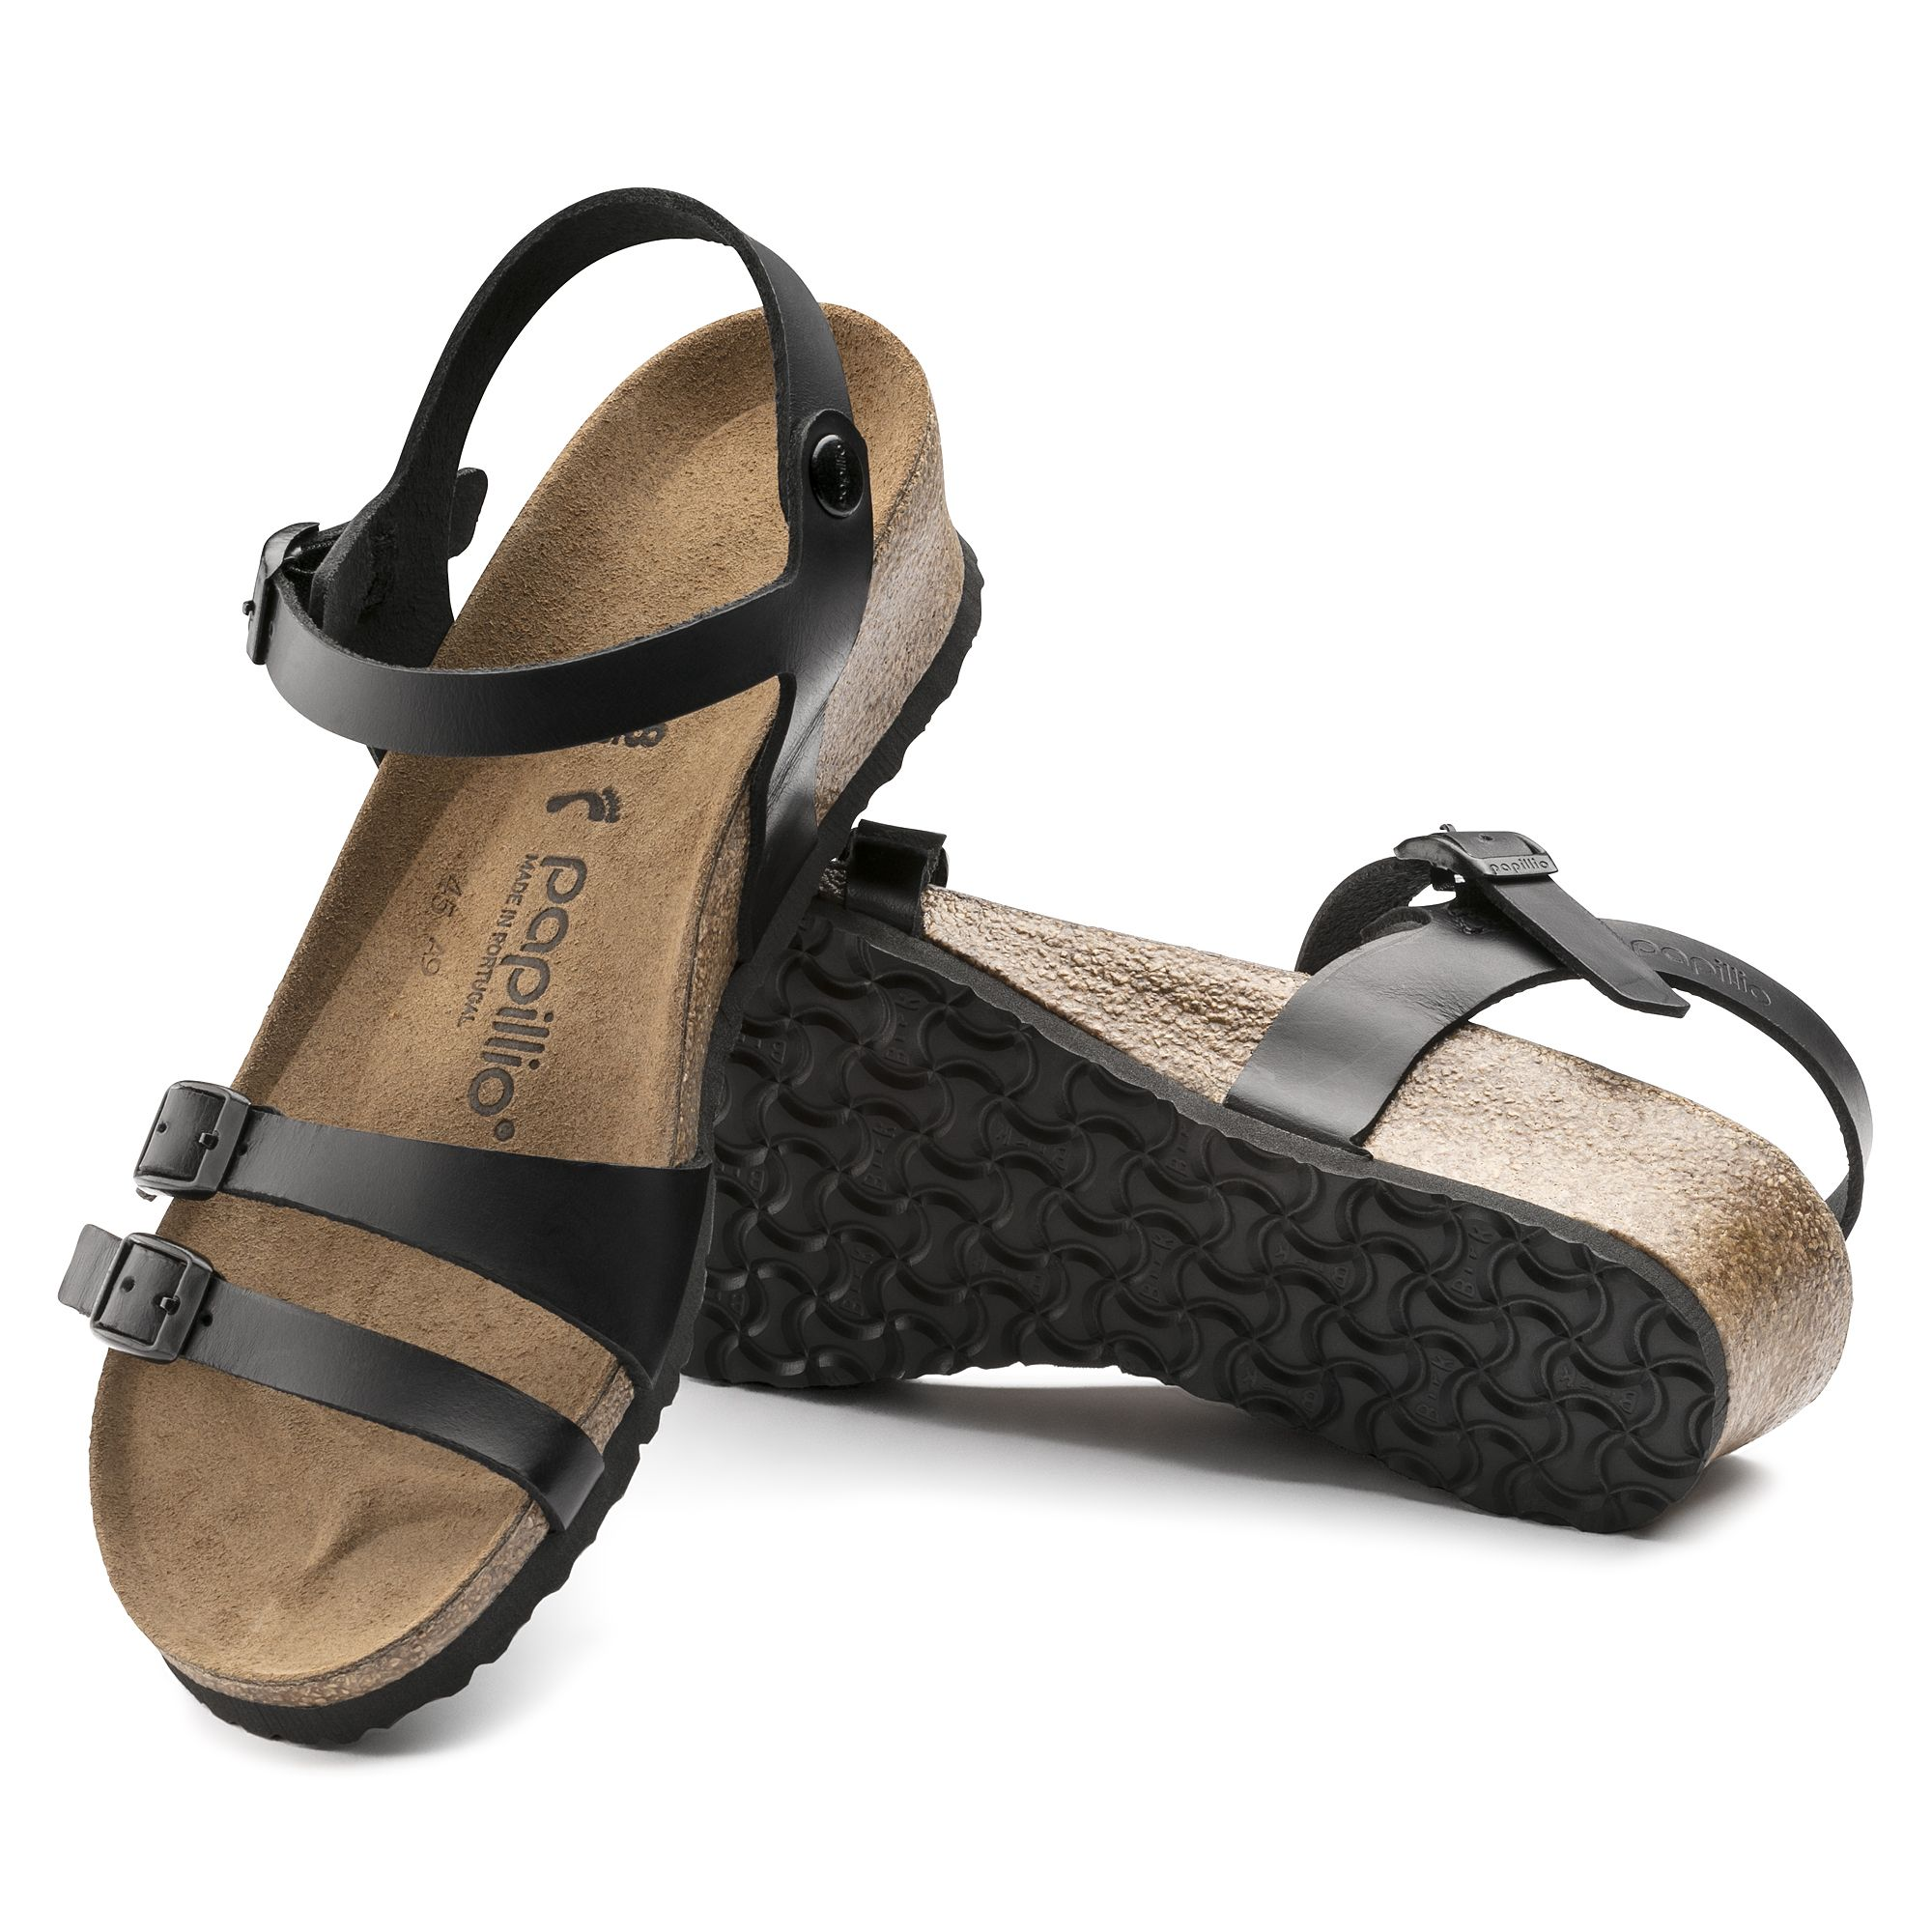 4e936e8649 Aravon Portia (Black Multi) Women's Maryjane Shoes. The Aravon Portia is  packed with style and grace and will have you ready for anything at a…